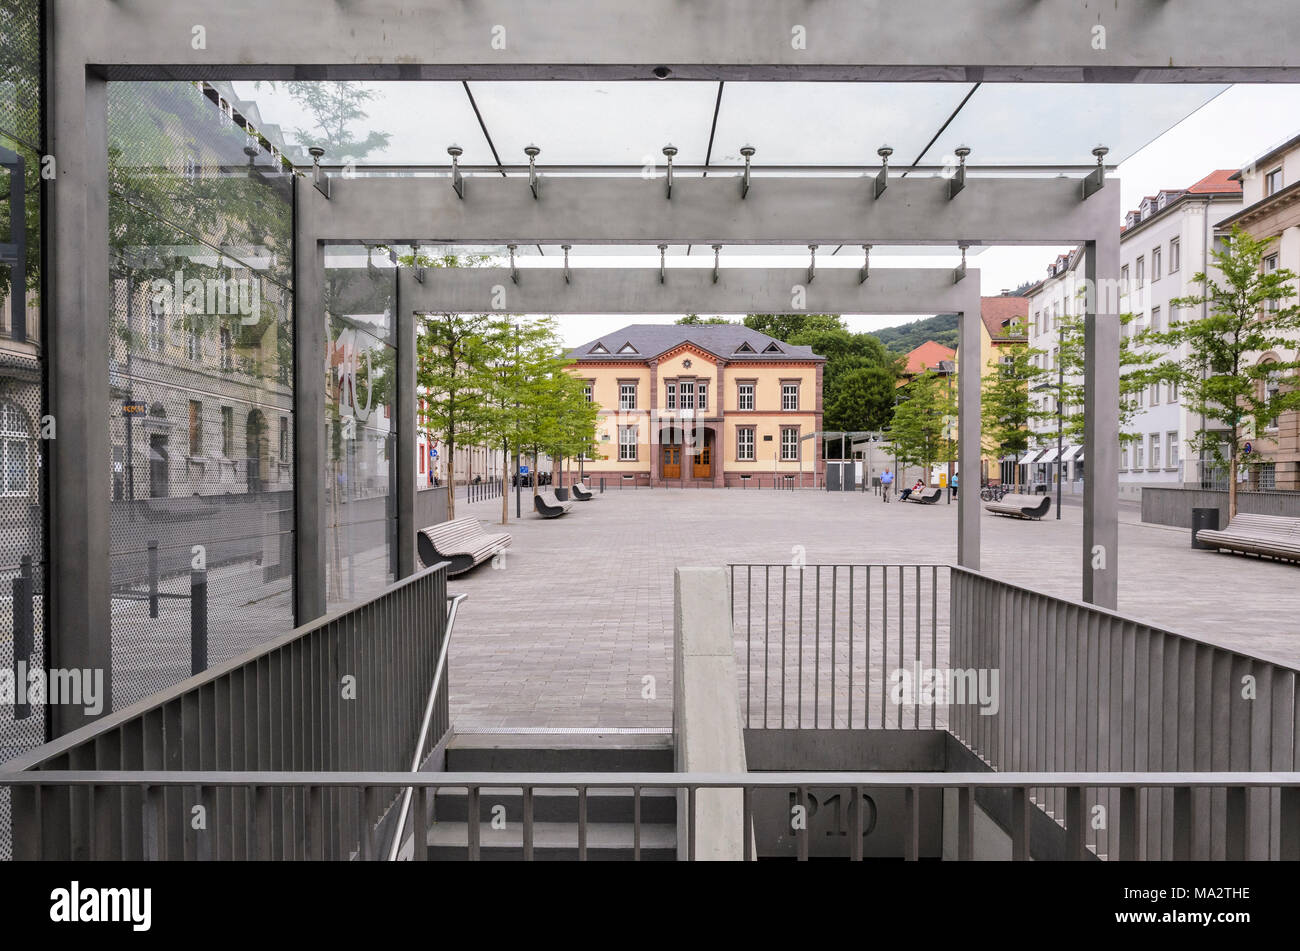 friedrich ebert platz stockfotos friedrich ebert platz bilder alamy. Black Bedroom Furniture Sets. Home Design Ideas